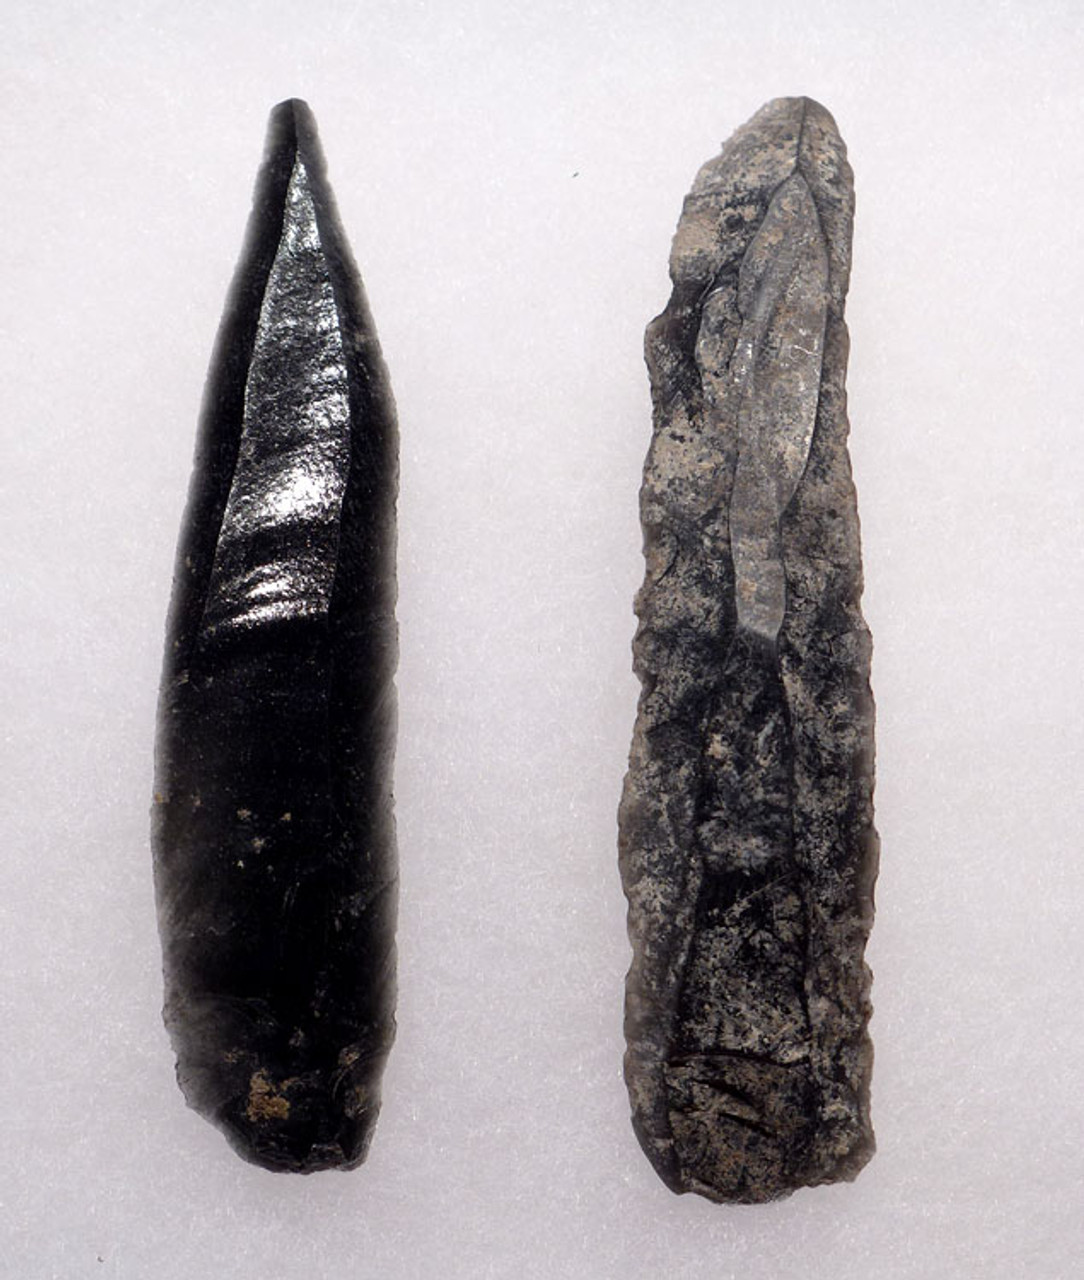 PC224 - SET OF AZTEC OBSIDIAN PRISMATIC SCALPEL AND BLADE IN FINEST PRESERVATION